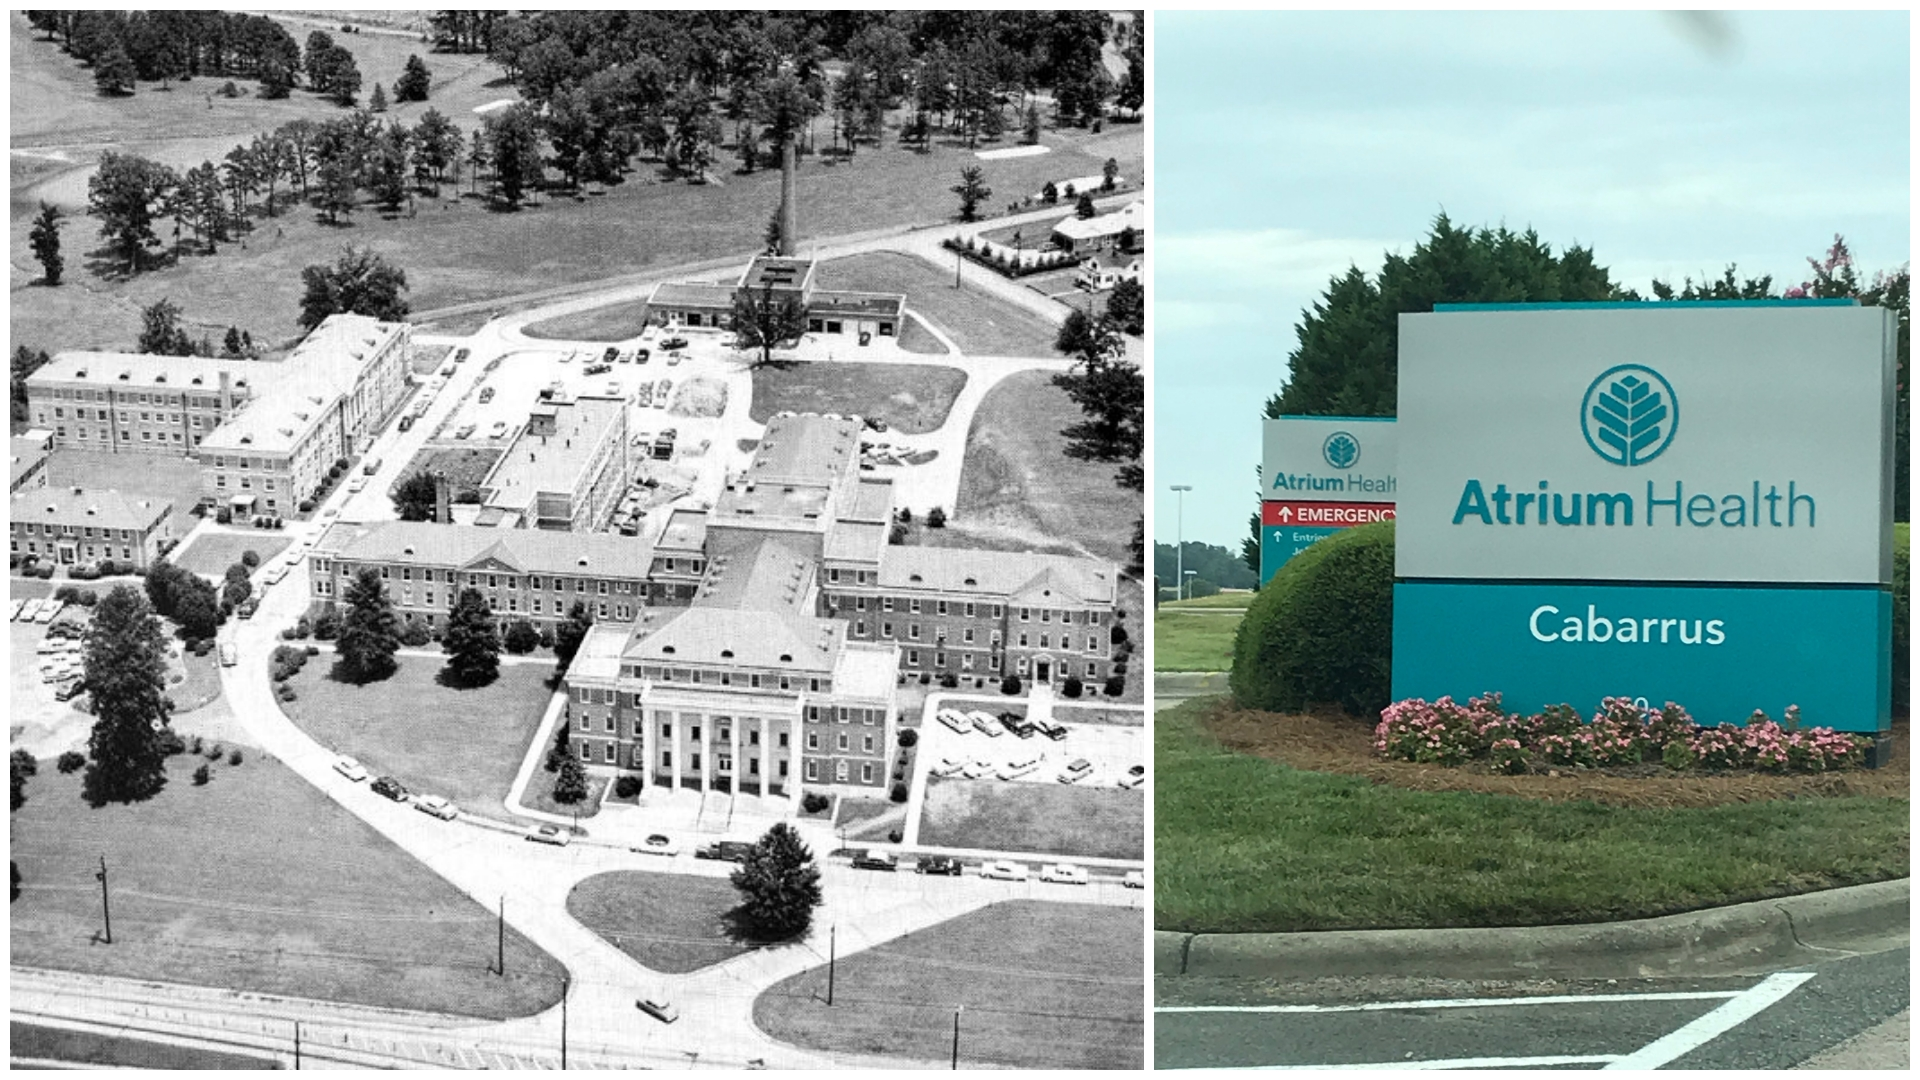 On Friday, August 2, Atrium Health will change its name from Carolinas HealthCare System NorthEast to Atrium Health Concord - representing the area's hospital in Concord and continuing the long history of providing care to Cabarrus, Rowan and surrounding counties.